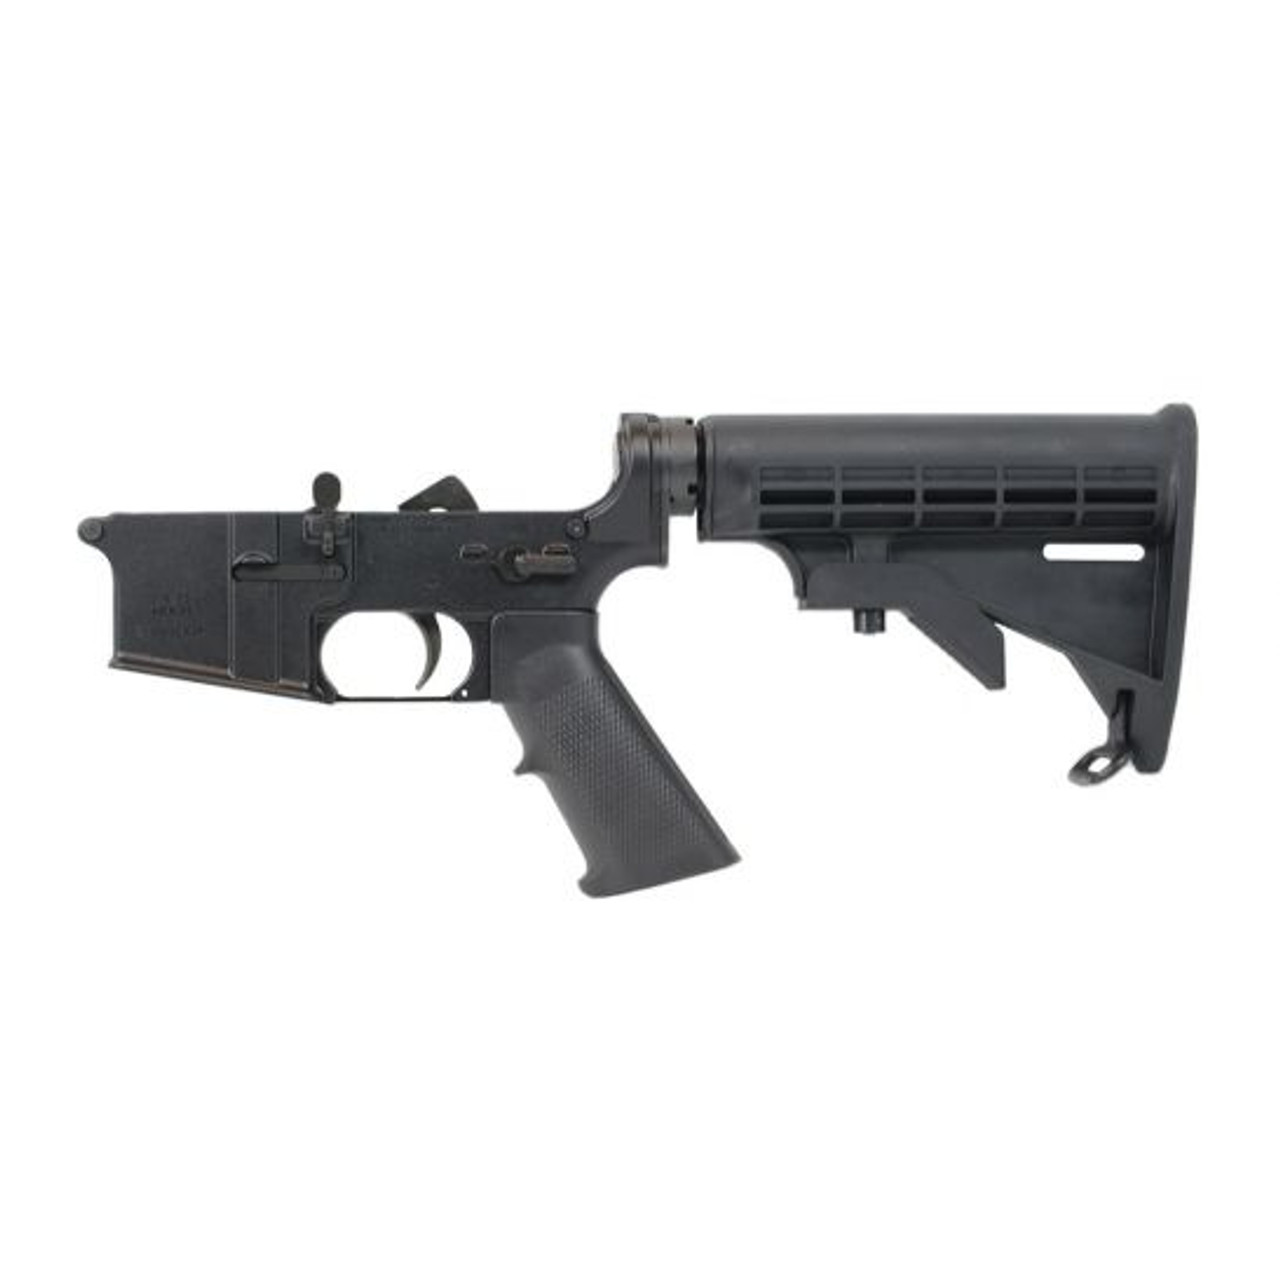 Palmetto State Armory Classic Stealth Complete Lower CALIFORNIA LEGAL - .223/5.56